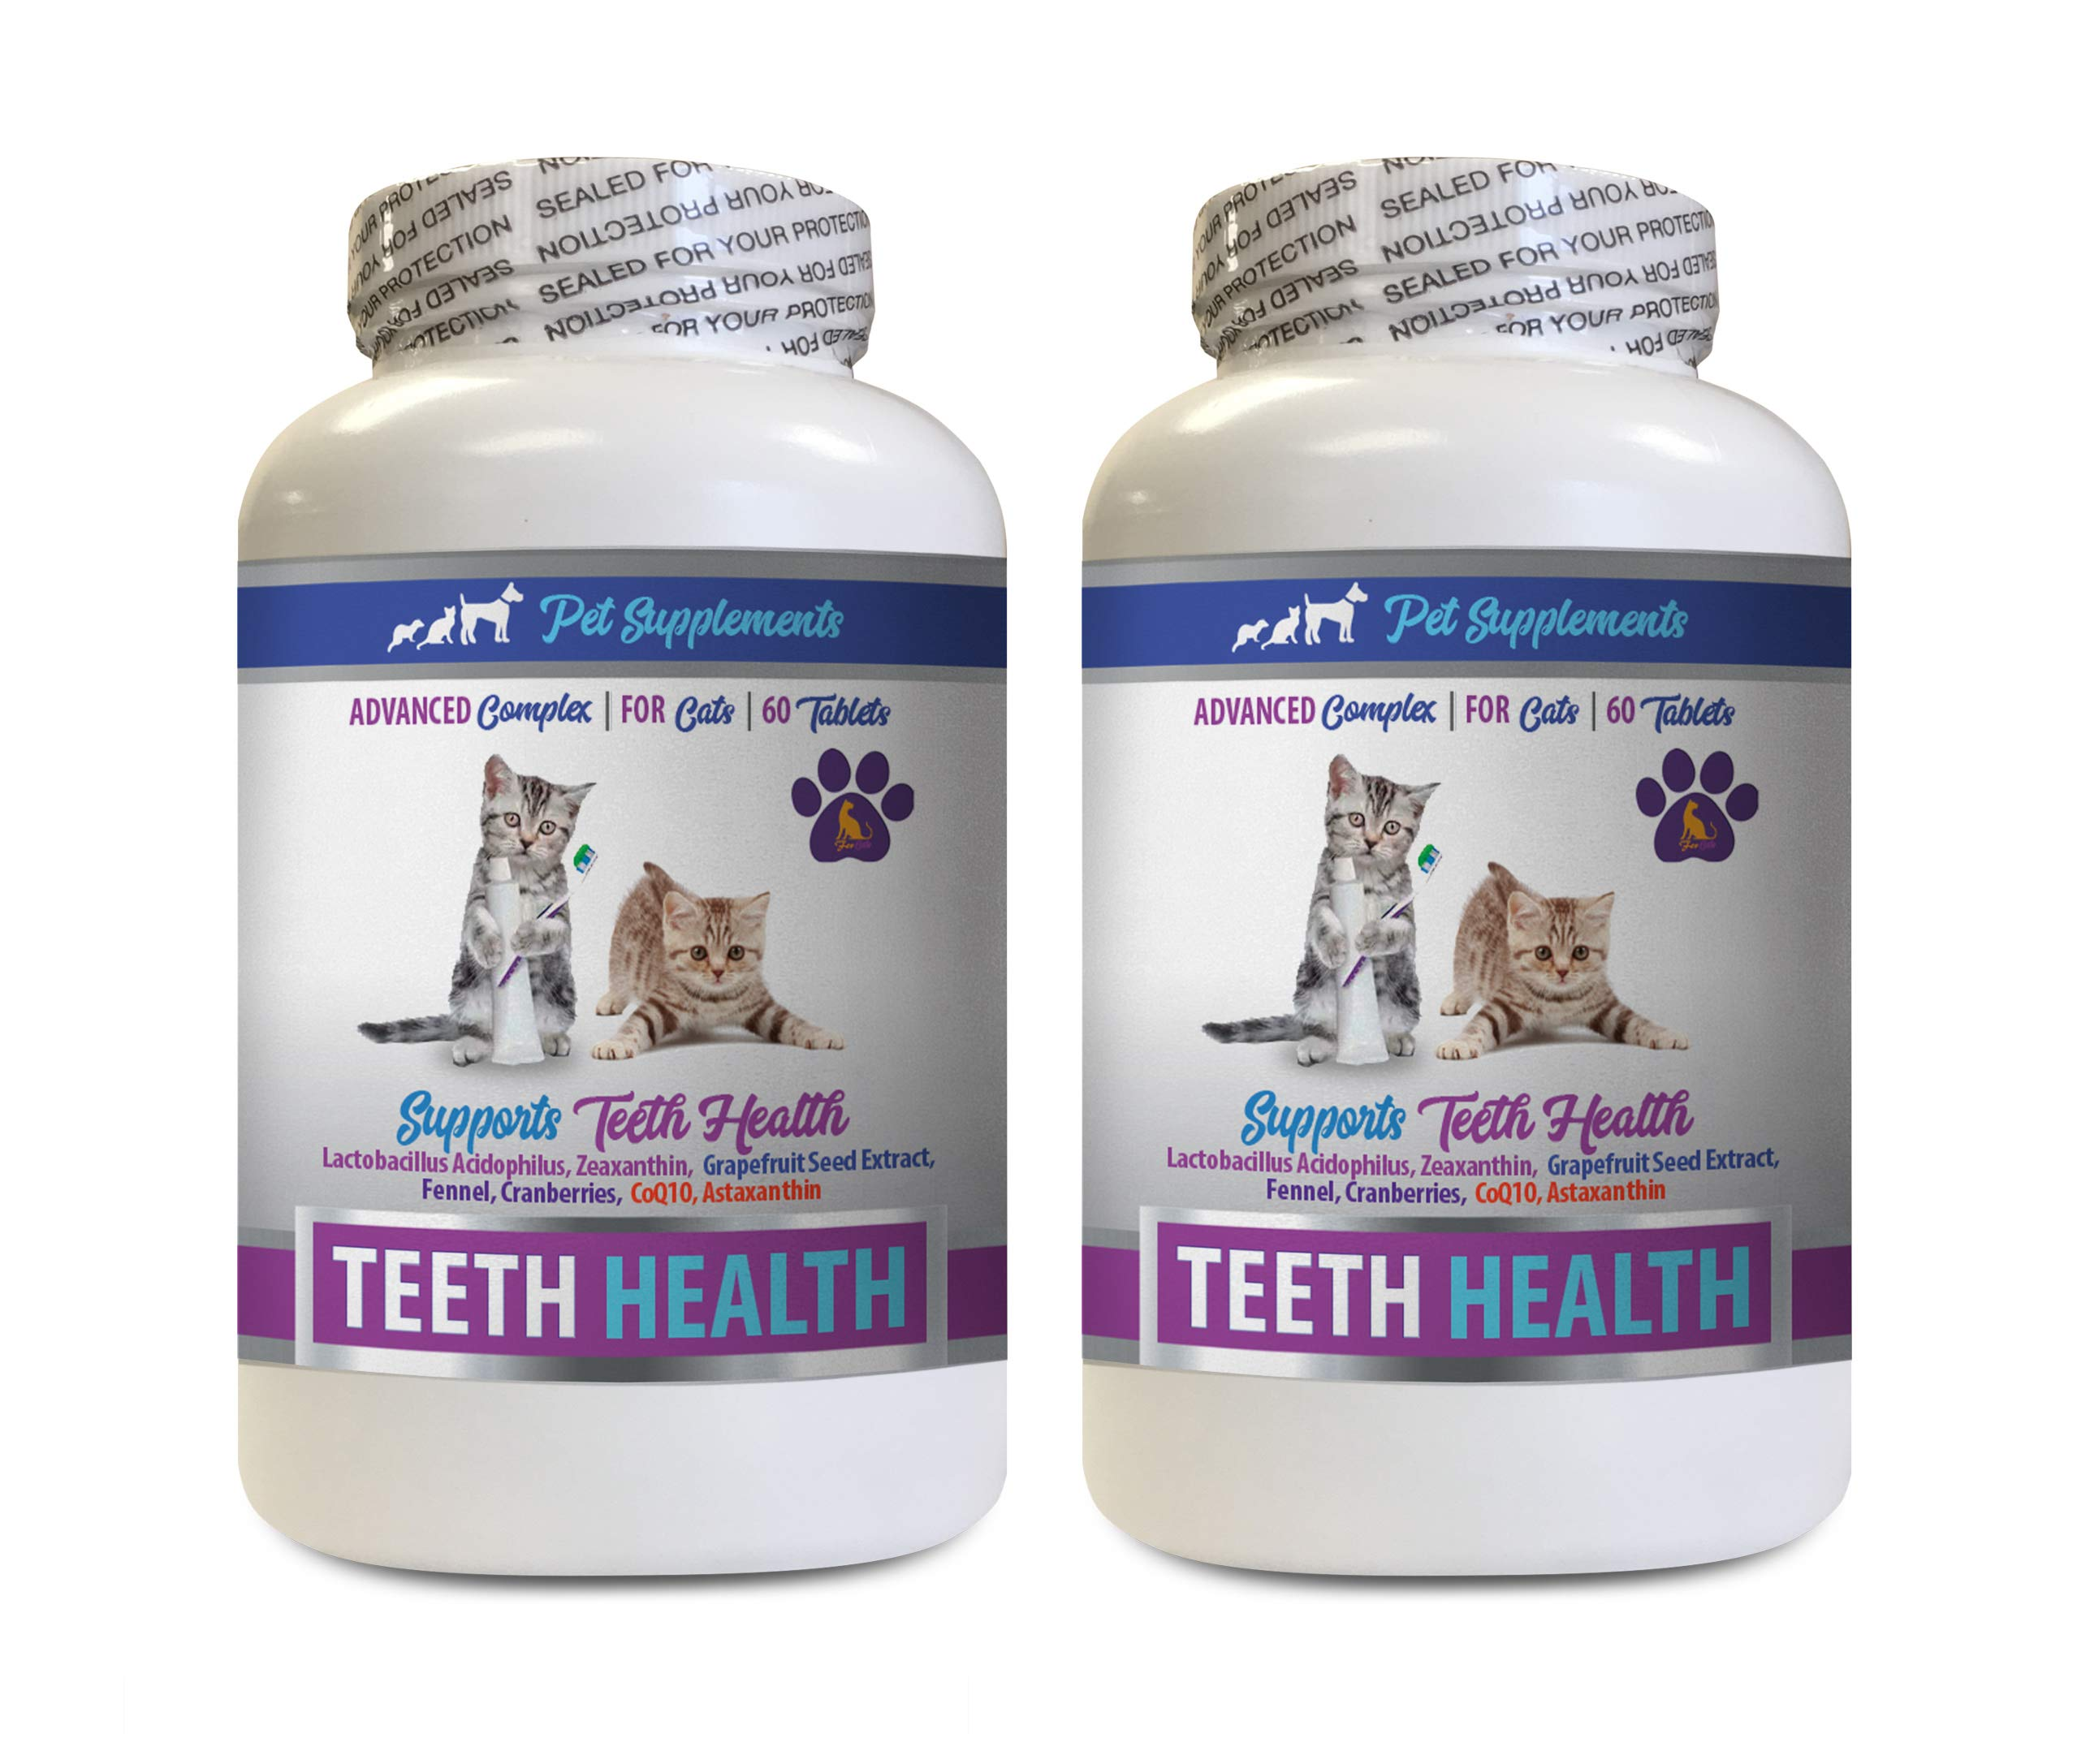 PET SUPPLEMENTS cat Bad Breath Treats - CAT Teeth Health - Advanced Mouth Health Complex - Immune Boost - Vitamin b12 for Cats - 2 Bottles (120 Tablets)